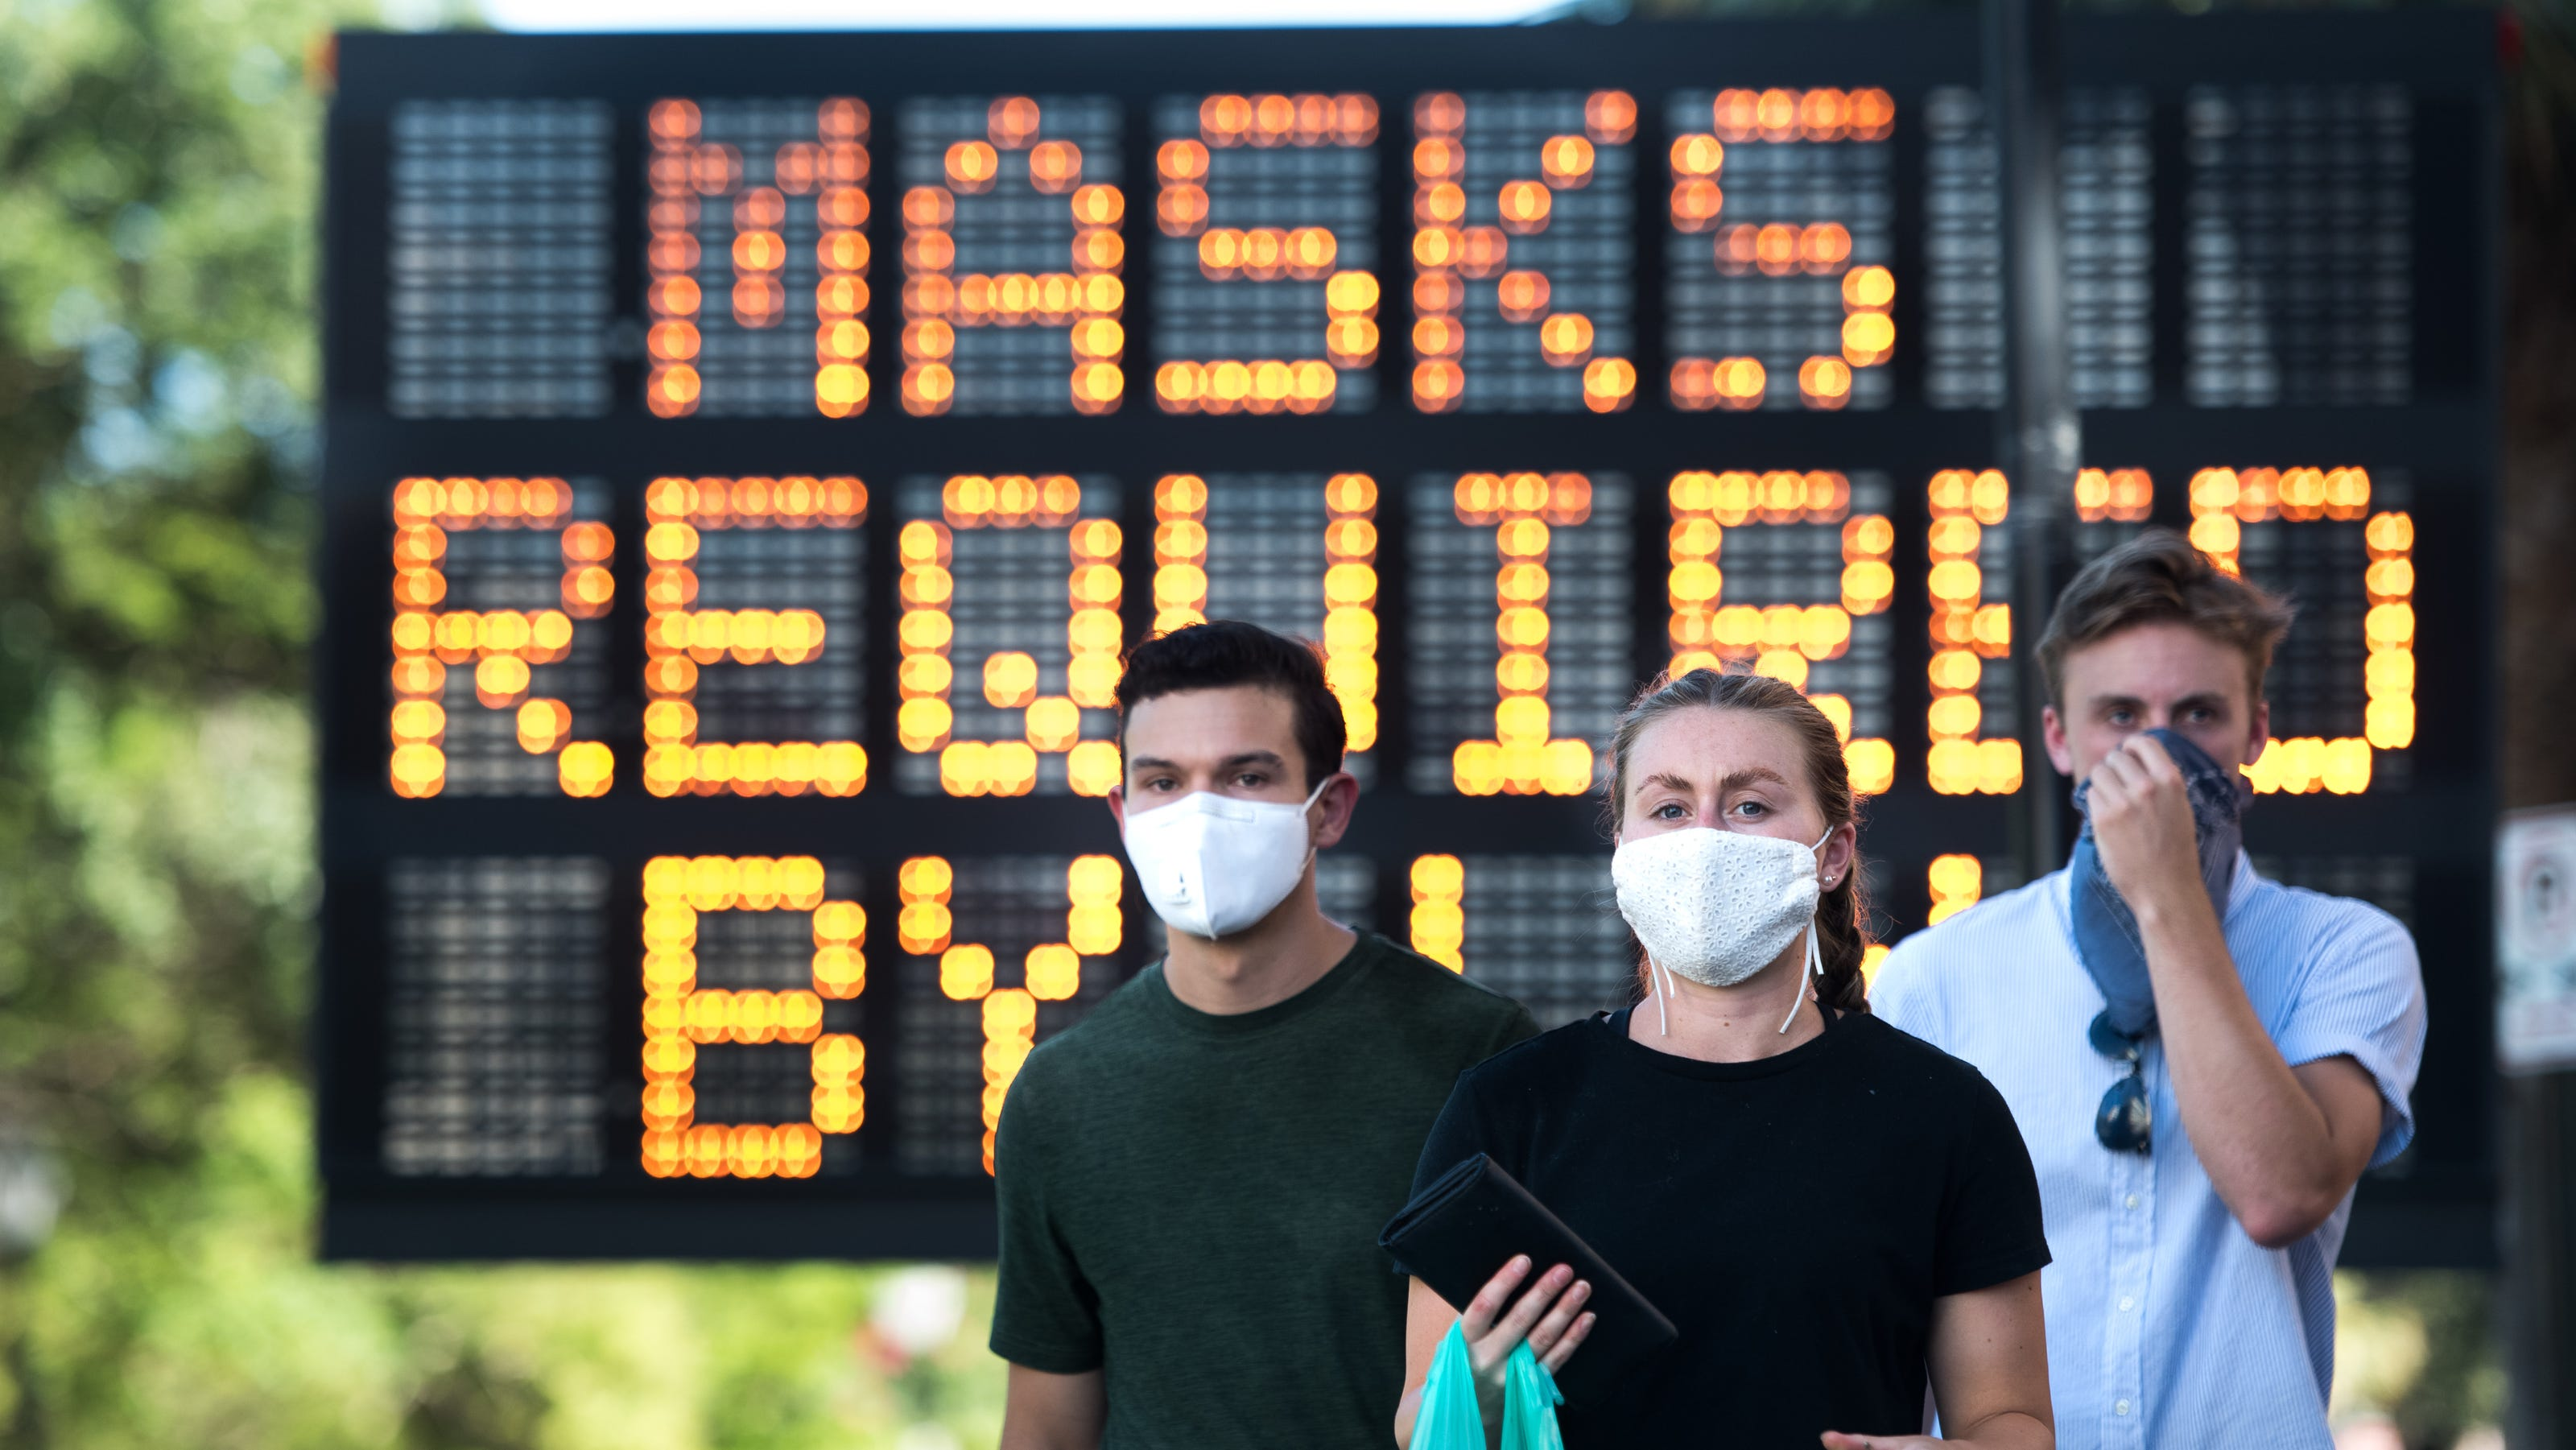 Fact check: Masks can keep out COVID-19 particles even though smaller than dry wall dust